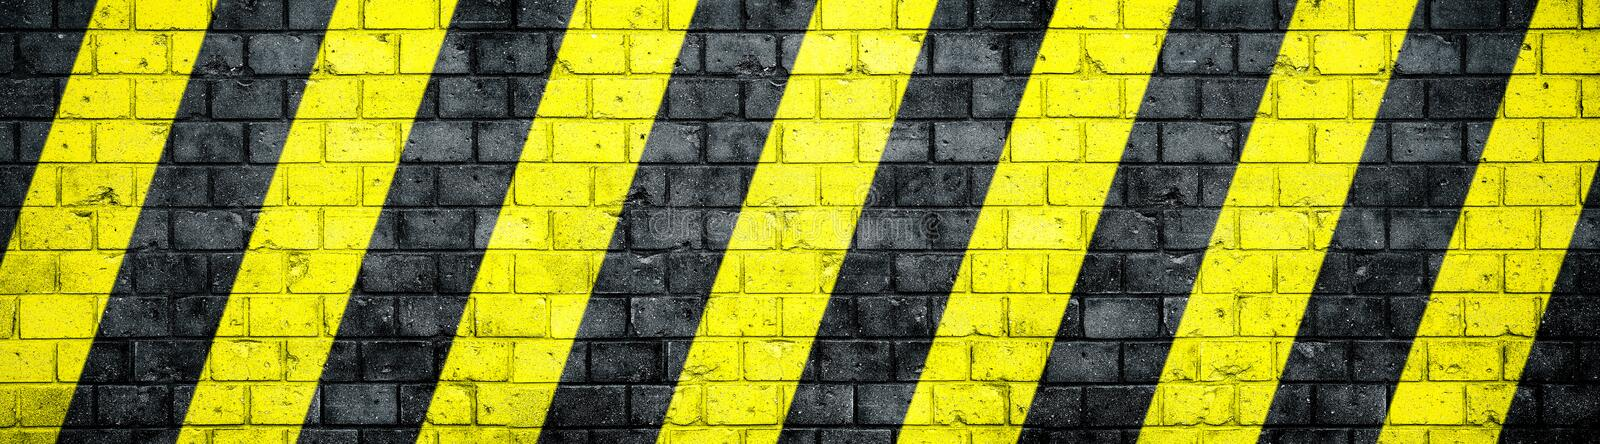 Old and weathered grungy brick wall with danger or attention black and yellow warning diagonal stripes texture background banner vector illustration